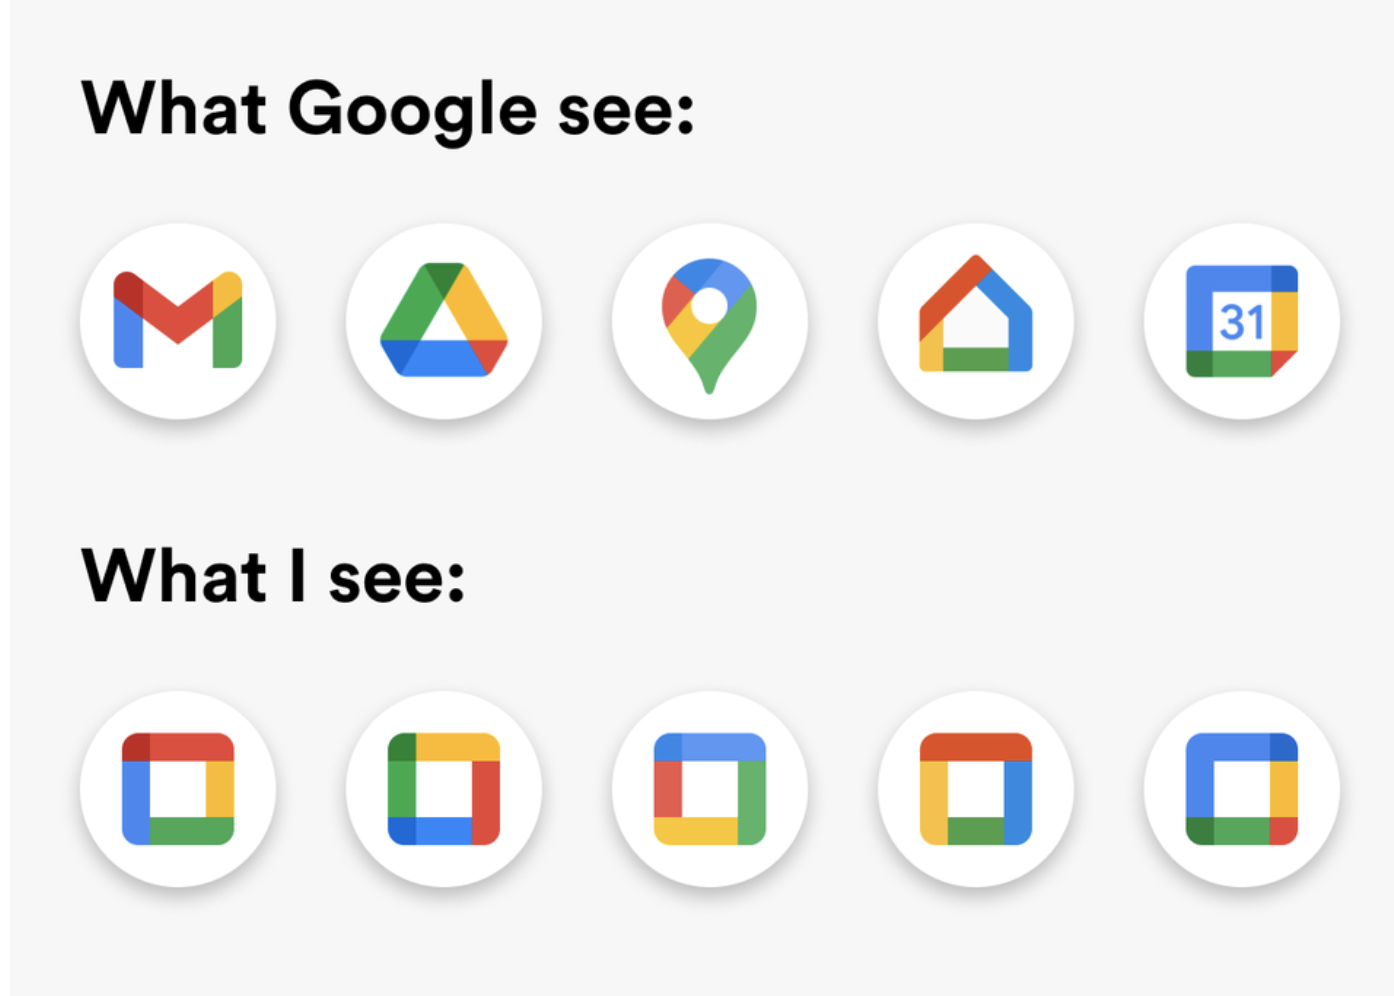 Google's new icons on top with square boxes beneath them to depict that all icons look basically the same now